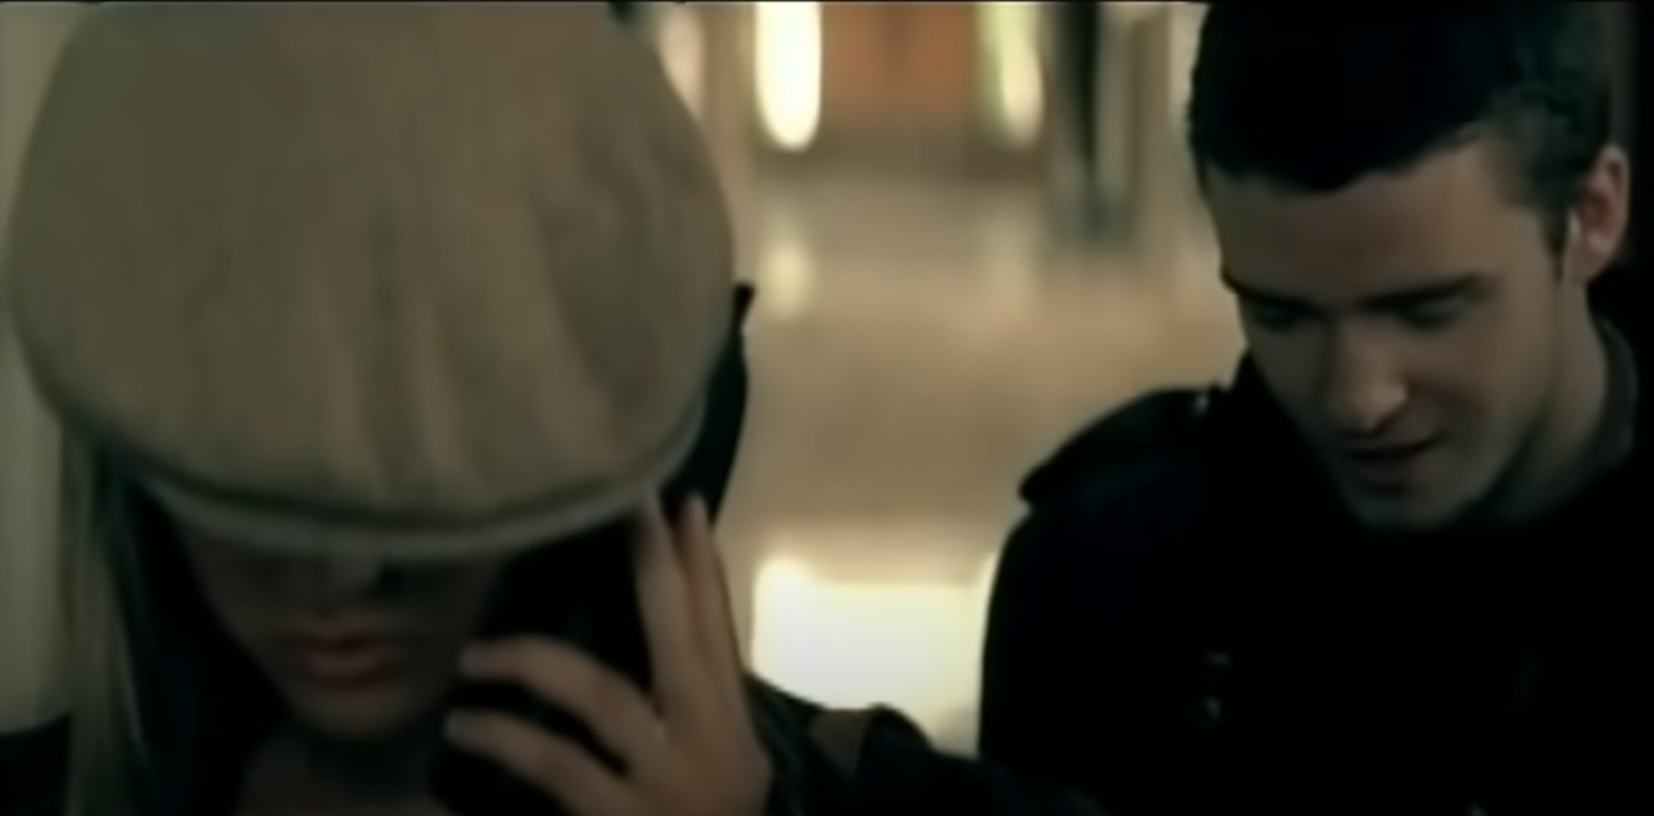 """A frame from the """"Cry Me a River"""" music video showing Justin Timberlake and a female actor"""